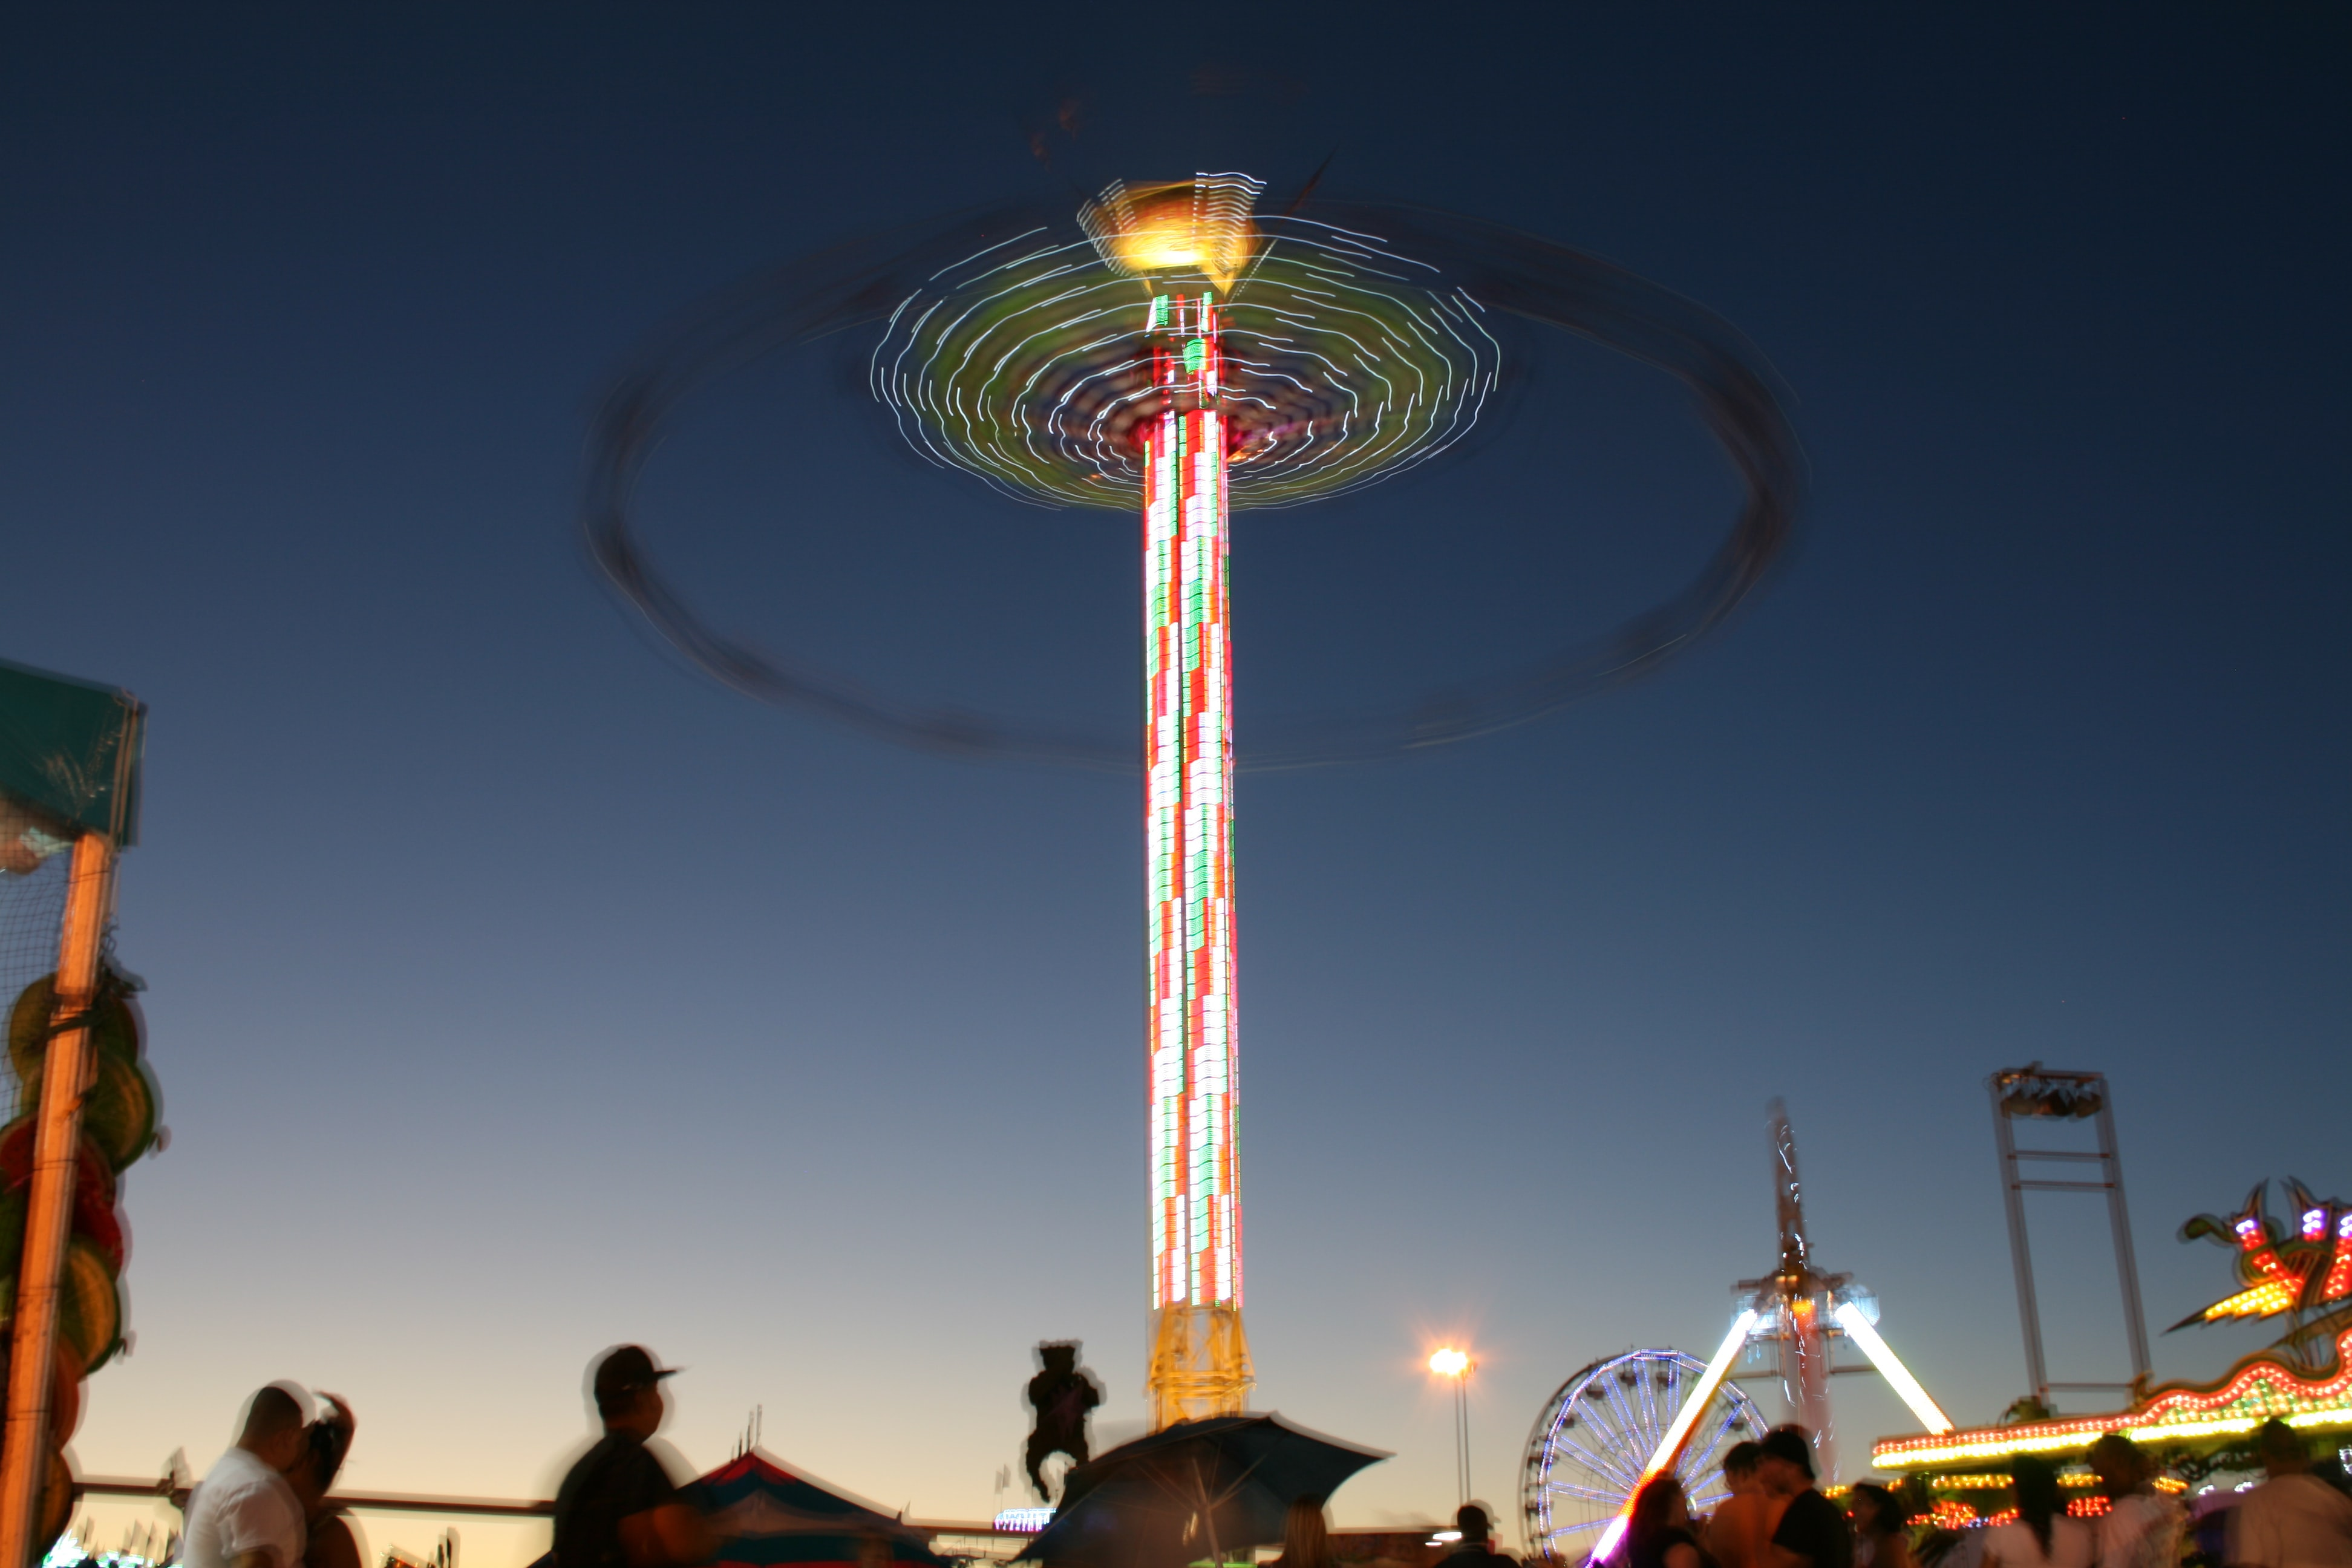 Long exposure of swing ride at Cal Expo glowing in the night with fair goers passing by